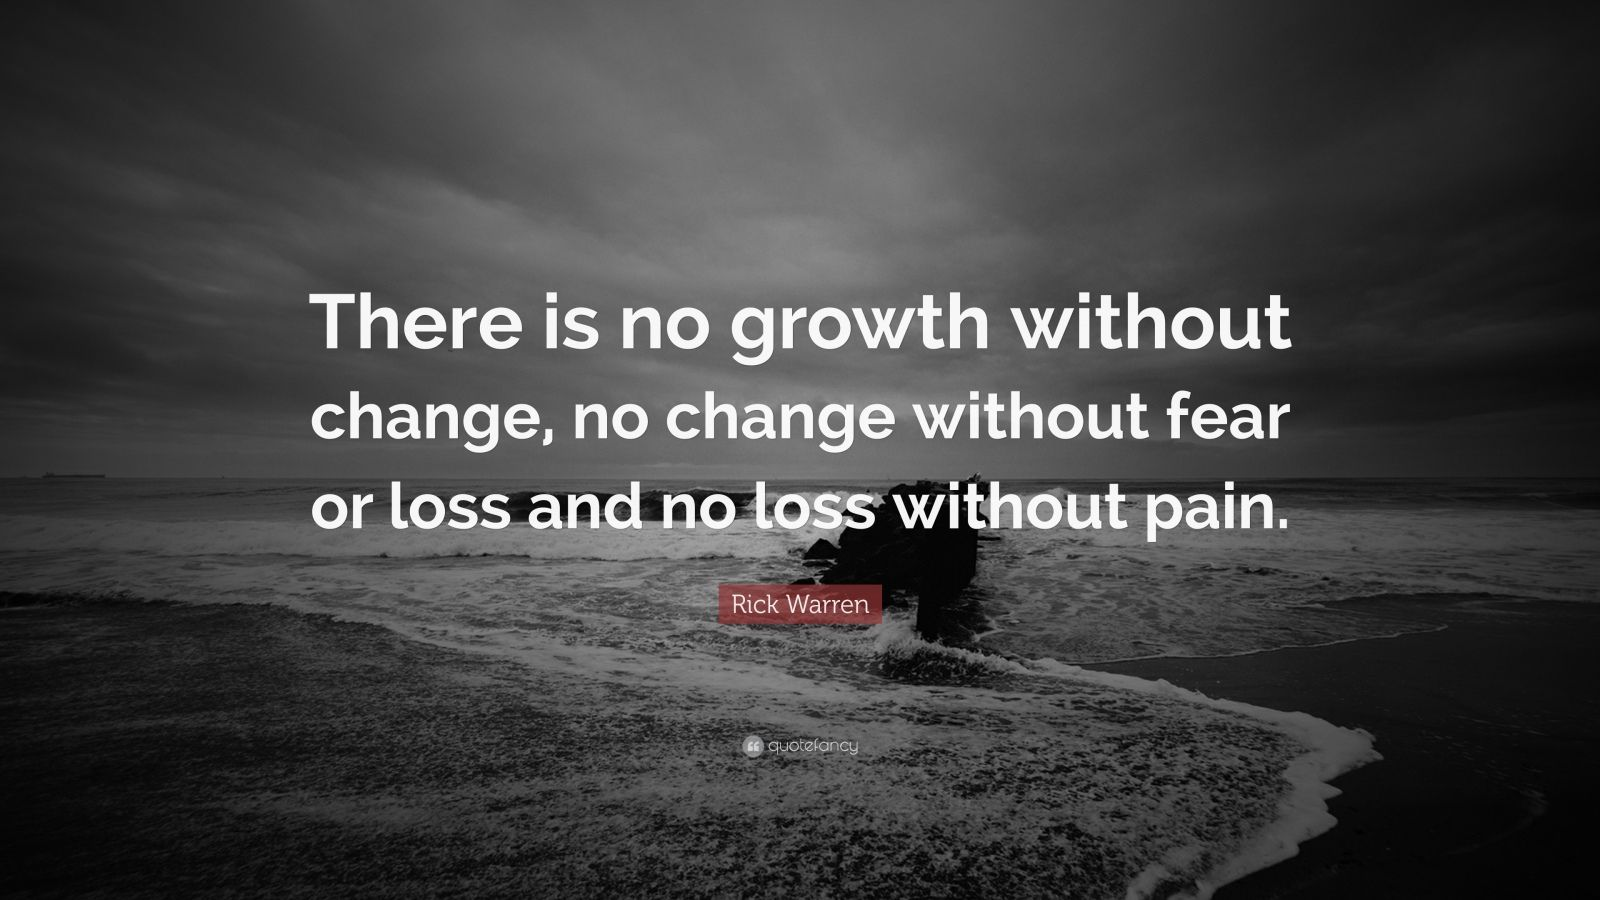 """Rick Warren Quote: """"There is no growth without change, no change without fear or loss and no loss without pain."""""""